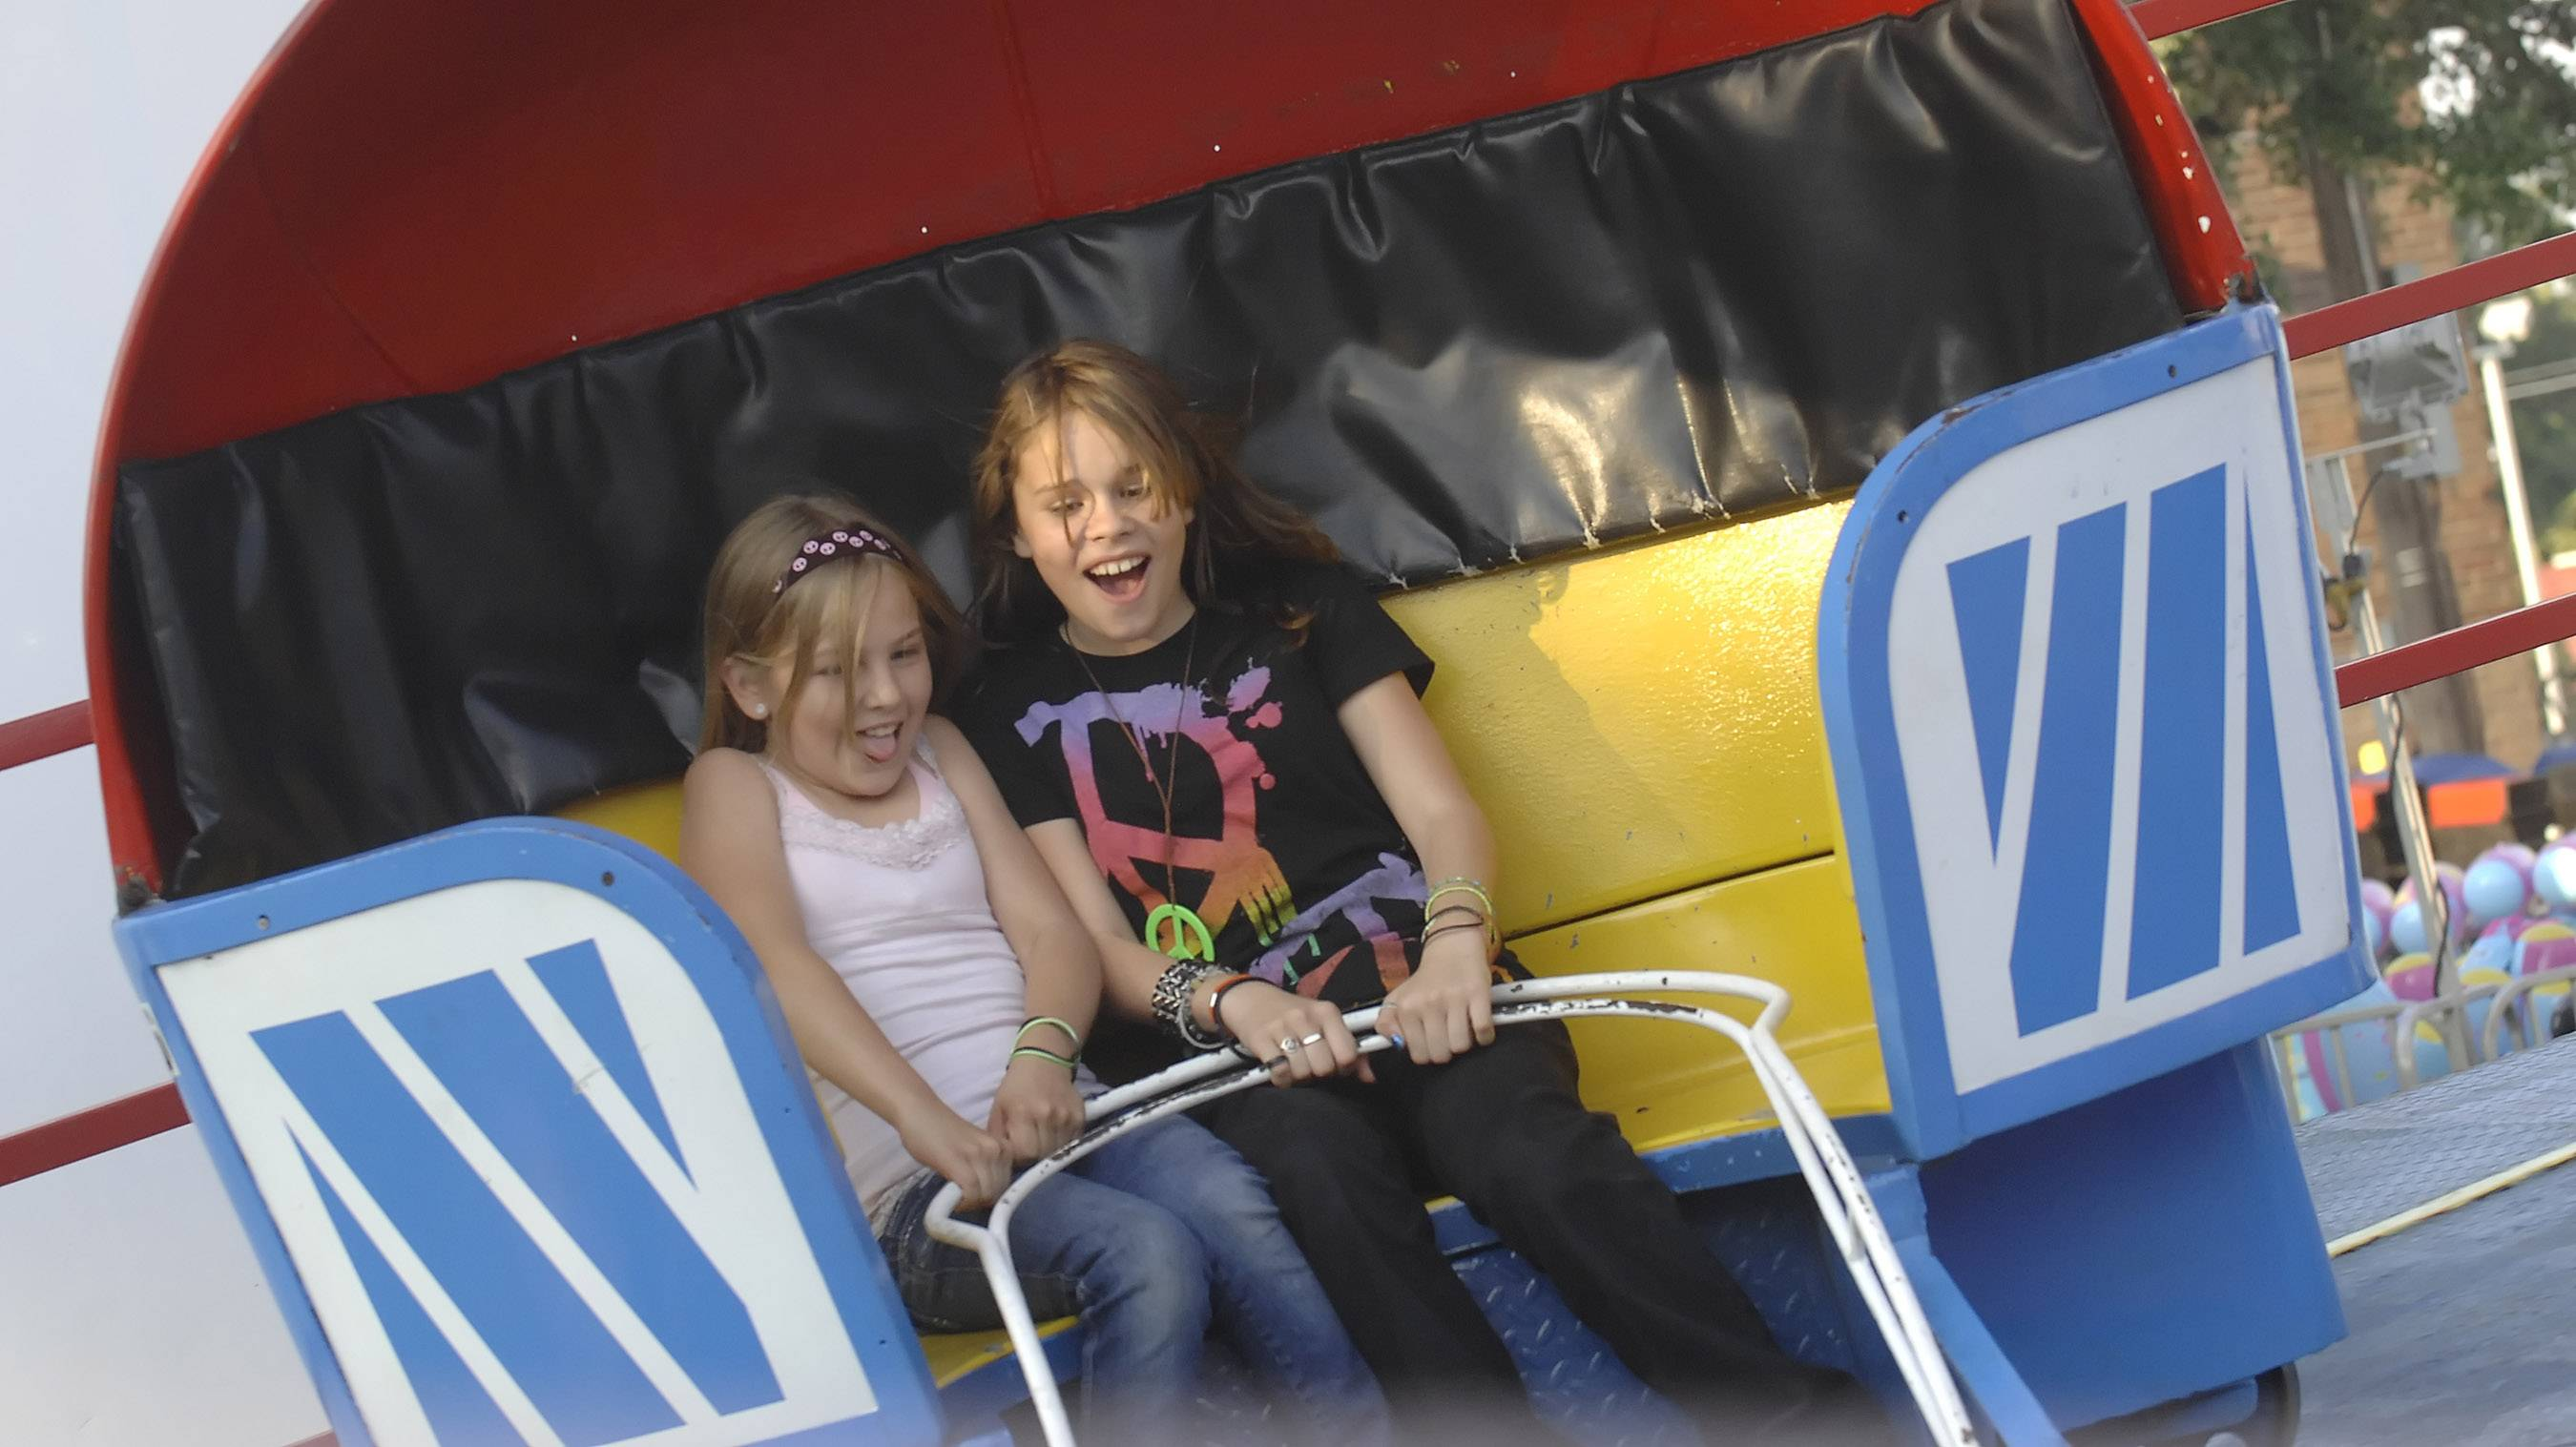 Carnival rides once again will play a big role in Villa Park's annual Oktoberfest celebration that opens Friday and continues through Sunday in Lions Park.